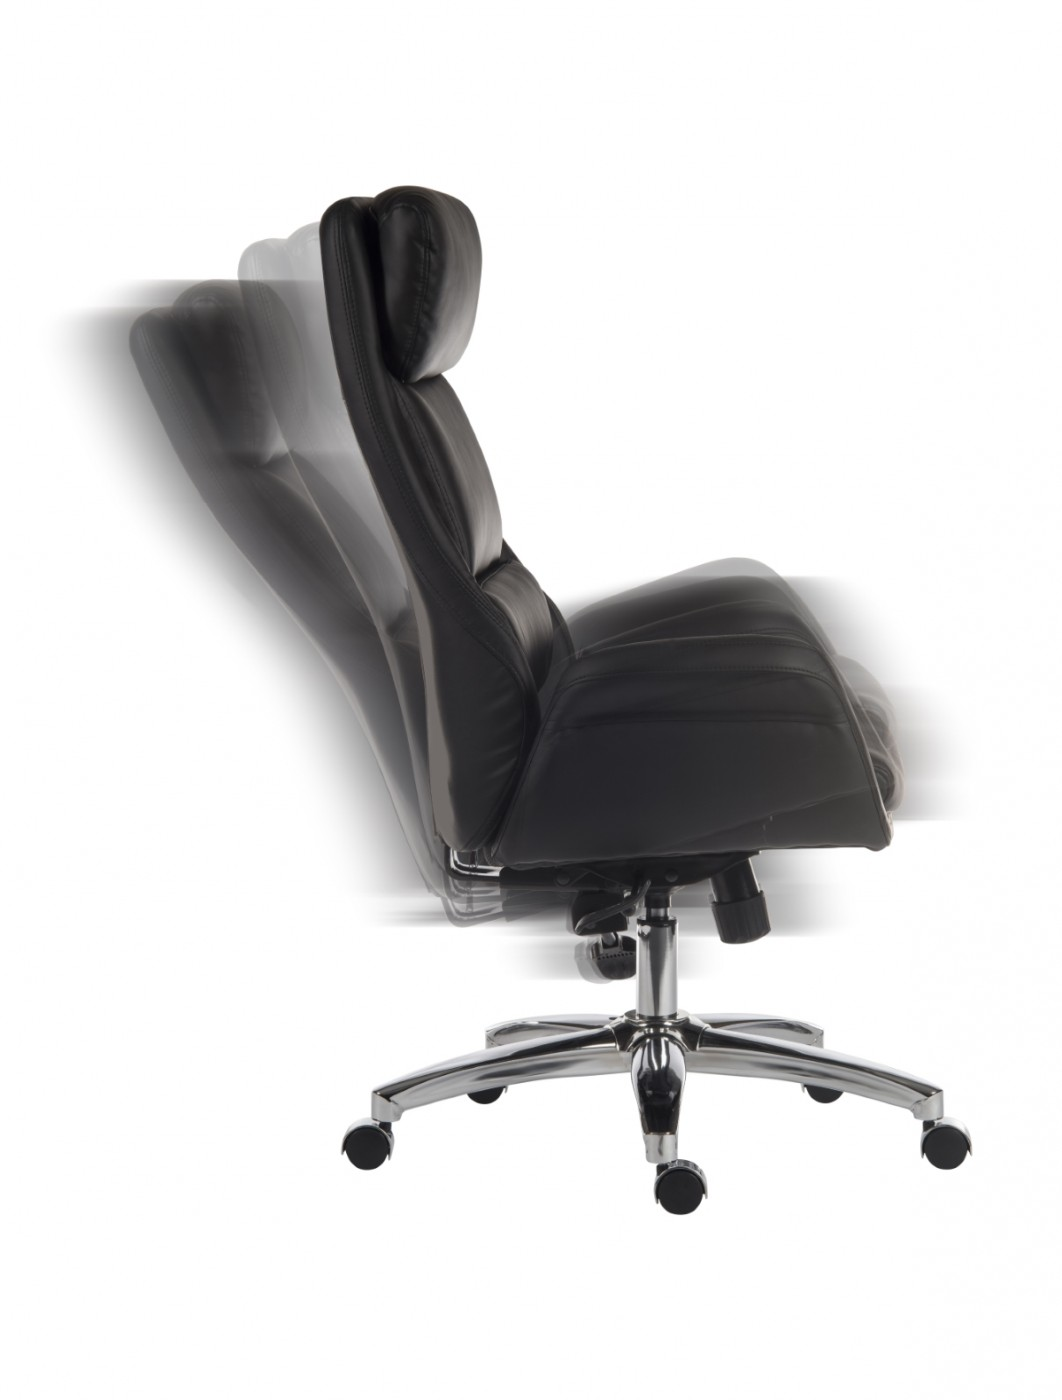 office reclining chair. Office Chairs - Teknik Ambassador Executive Reclining Chair 6949BLK Enlarged View W